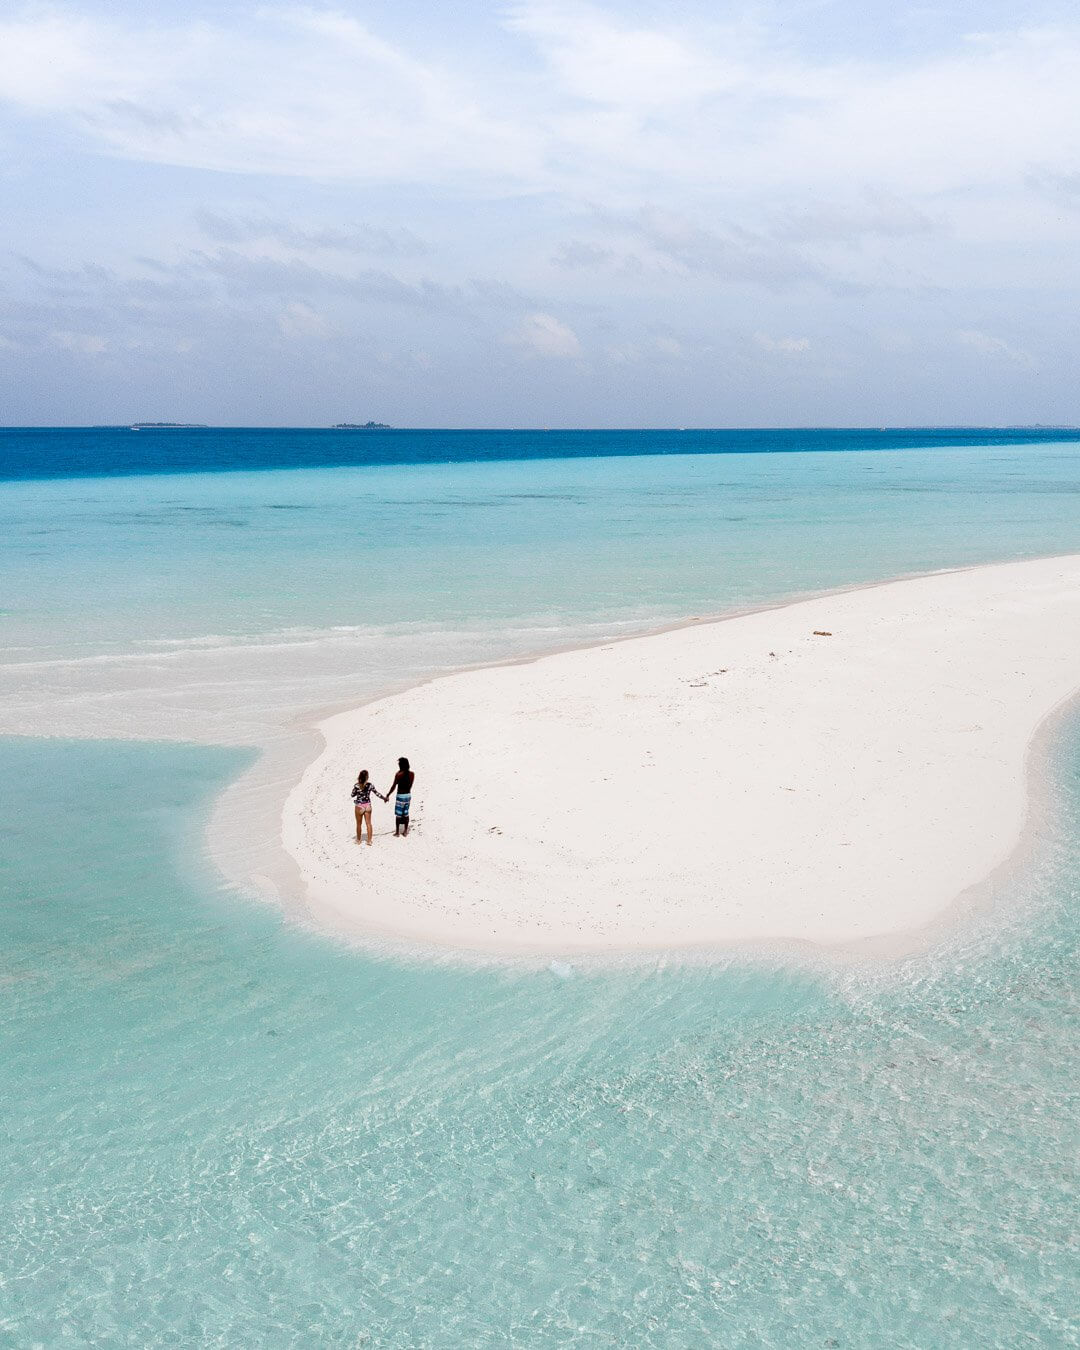 A guy and a girl on the end of a sandbank in the Maldives